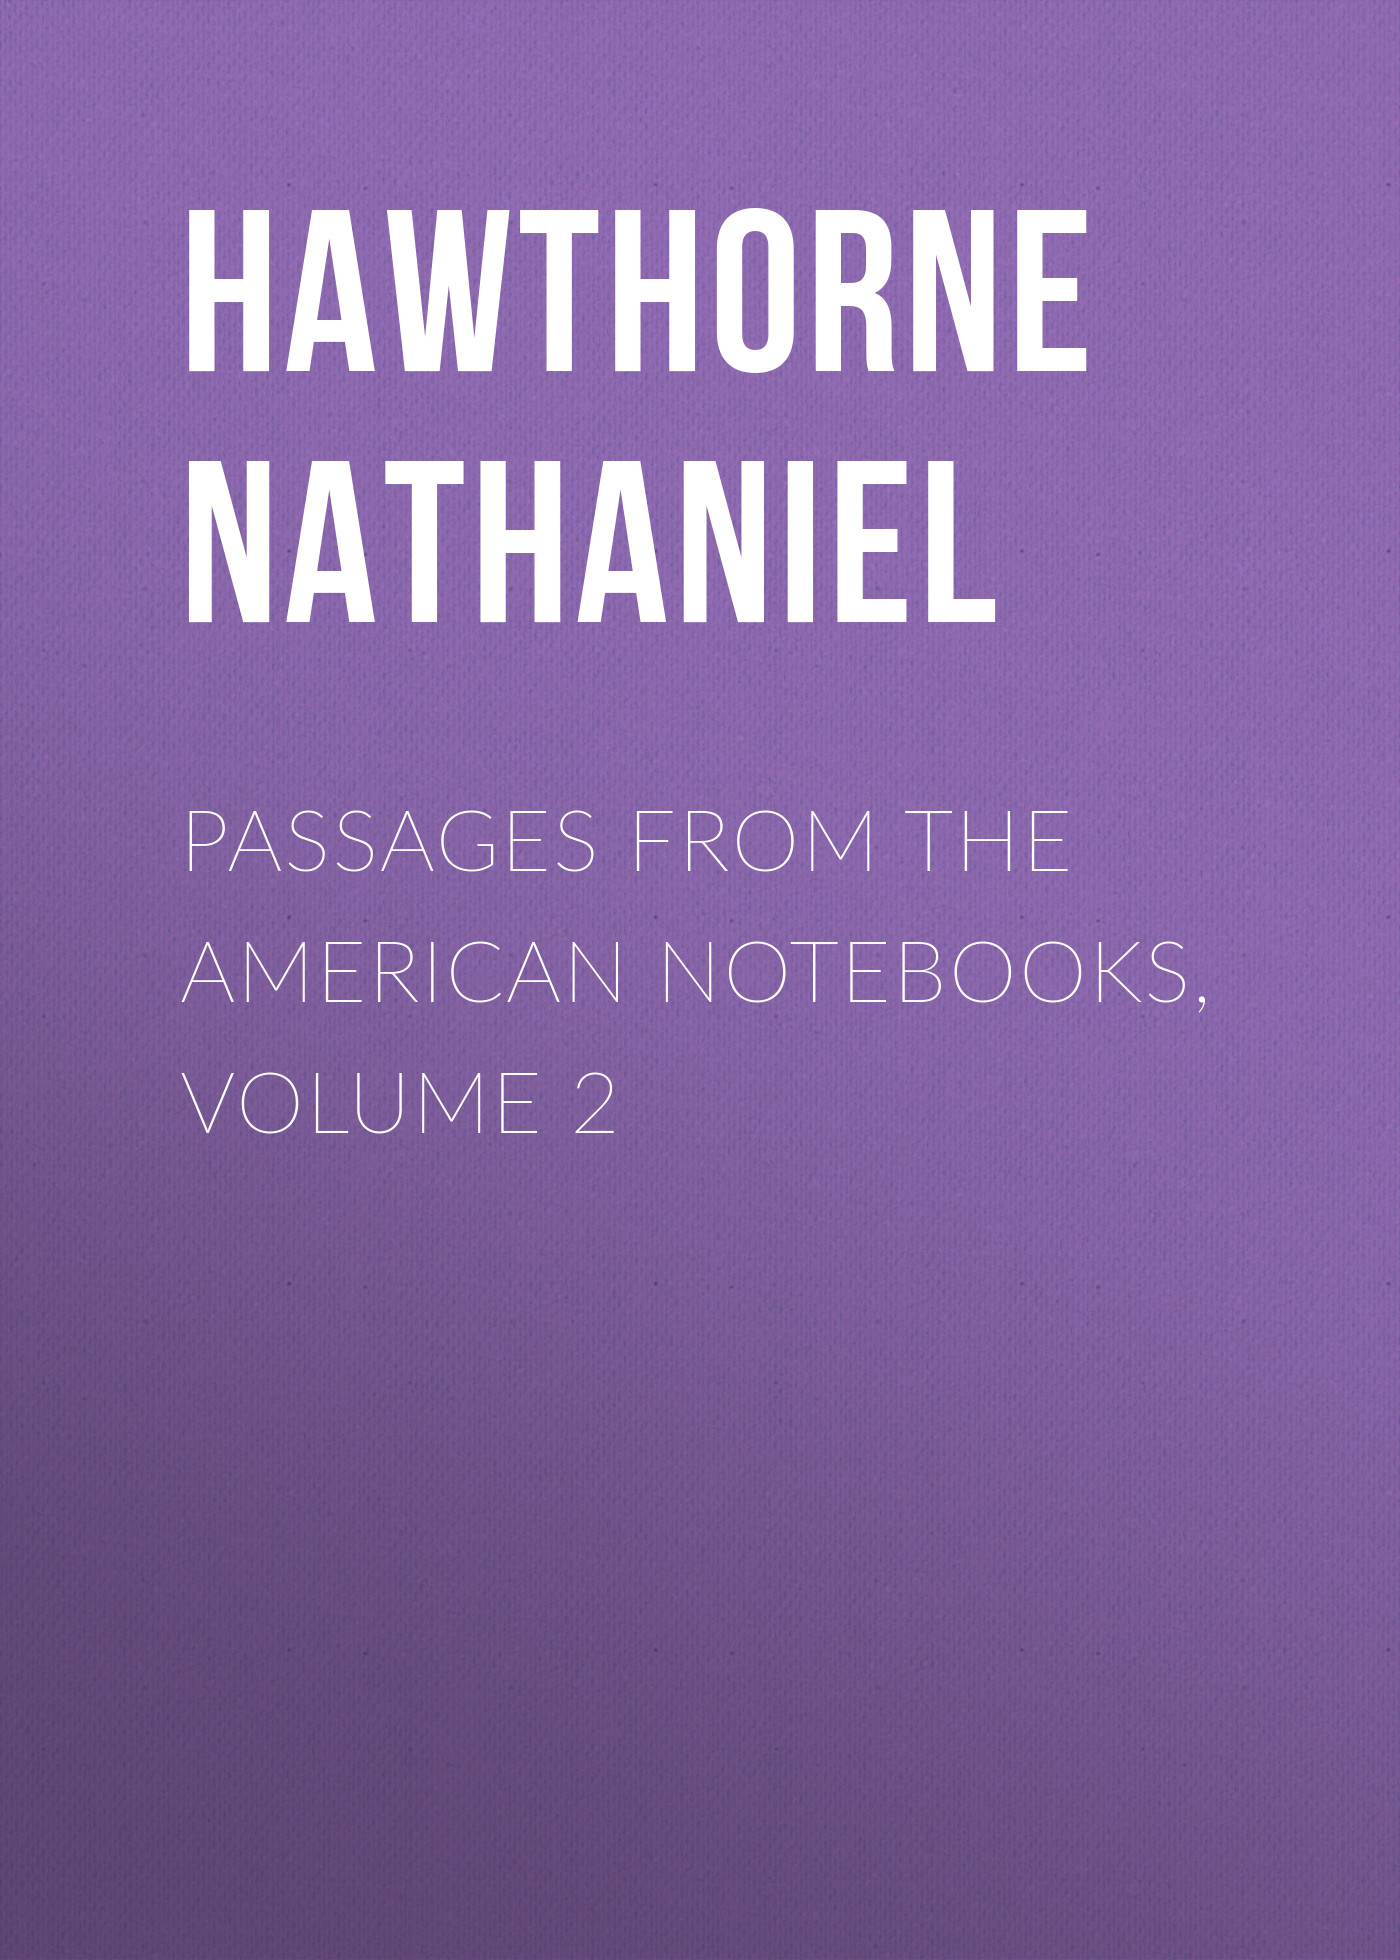 Hawthorne Nathaniel Passages from the American Notebooks, Volume 2 hawthorne nathaniel passages from the english notebooks complete